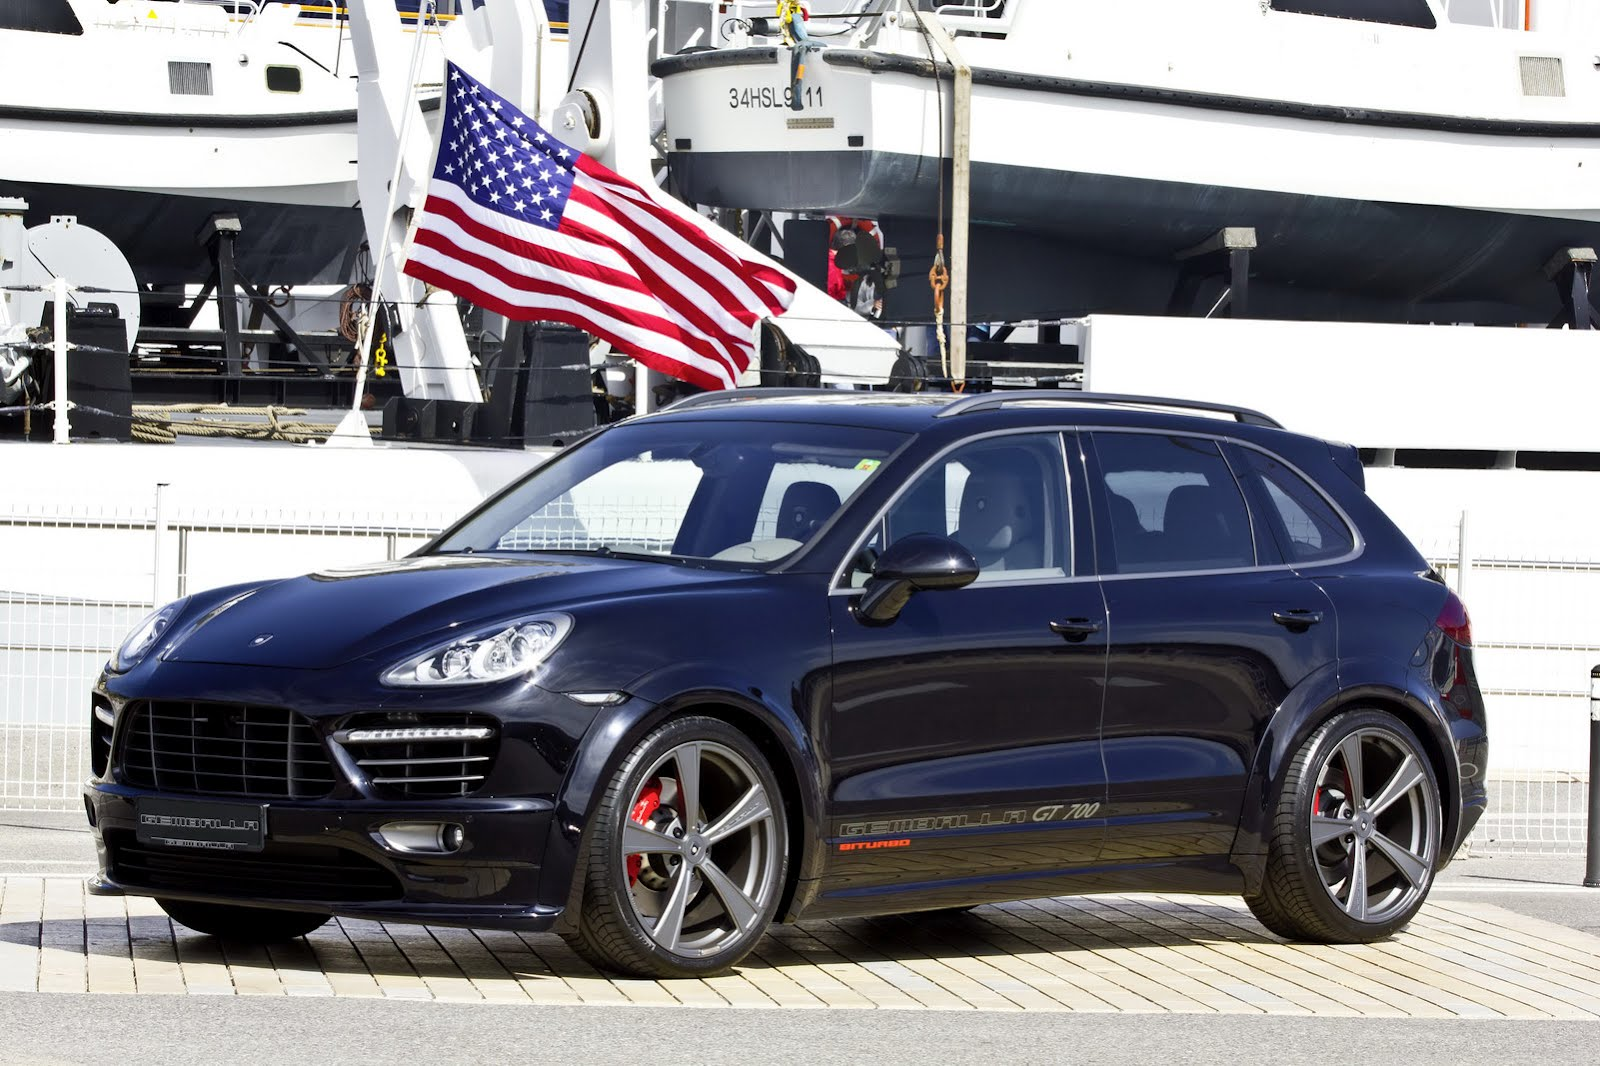 Porsche Cayenne gets new aero kit from Gemballa